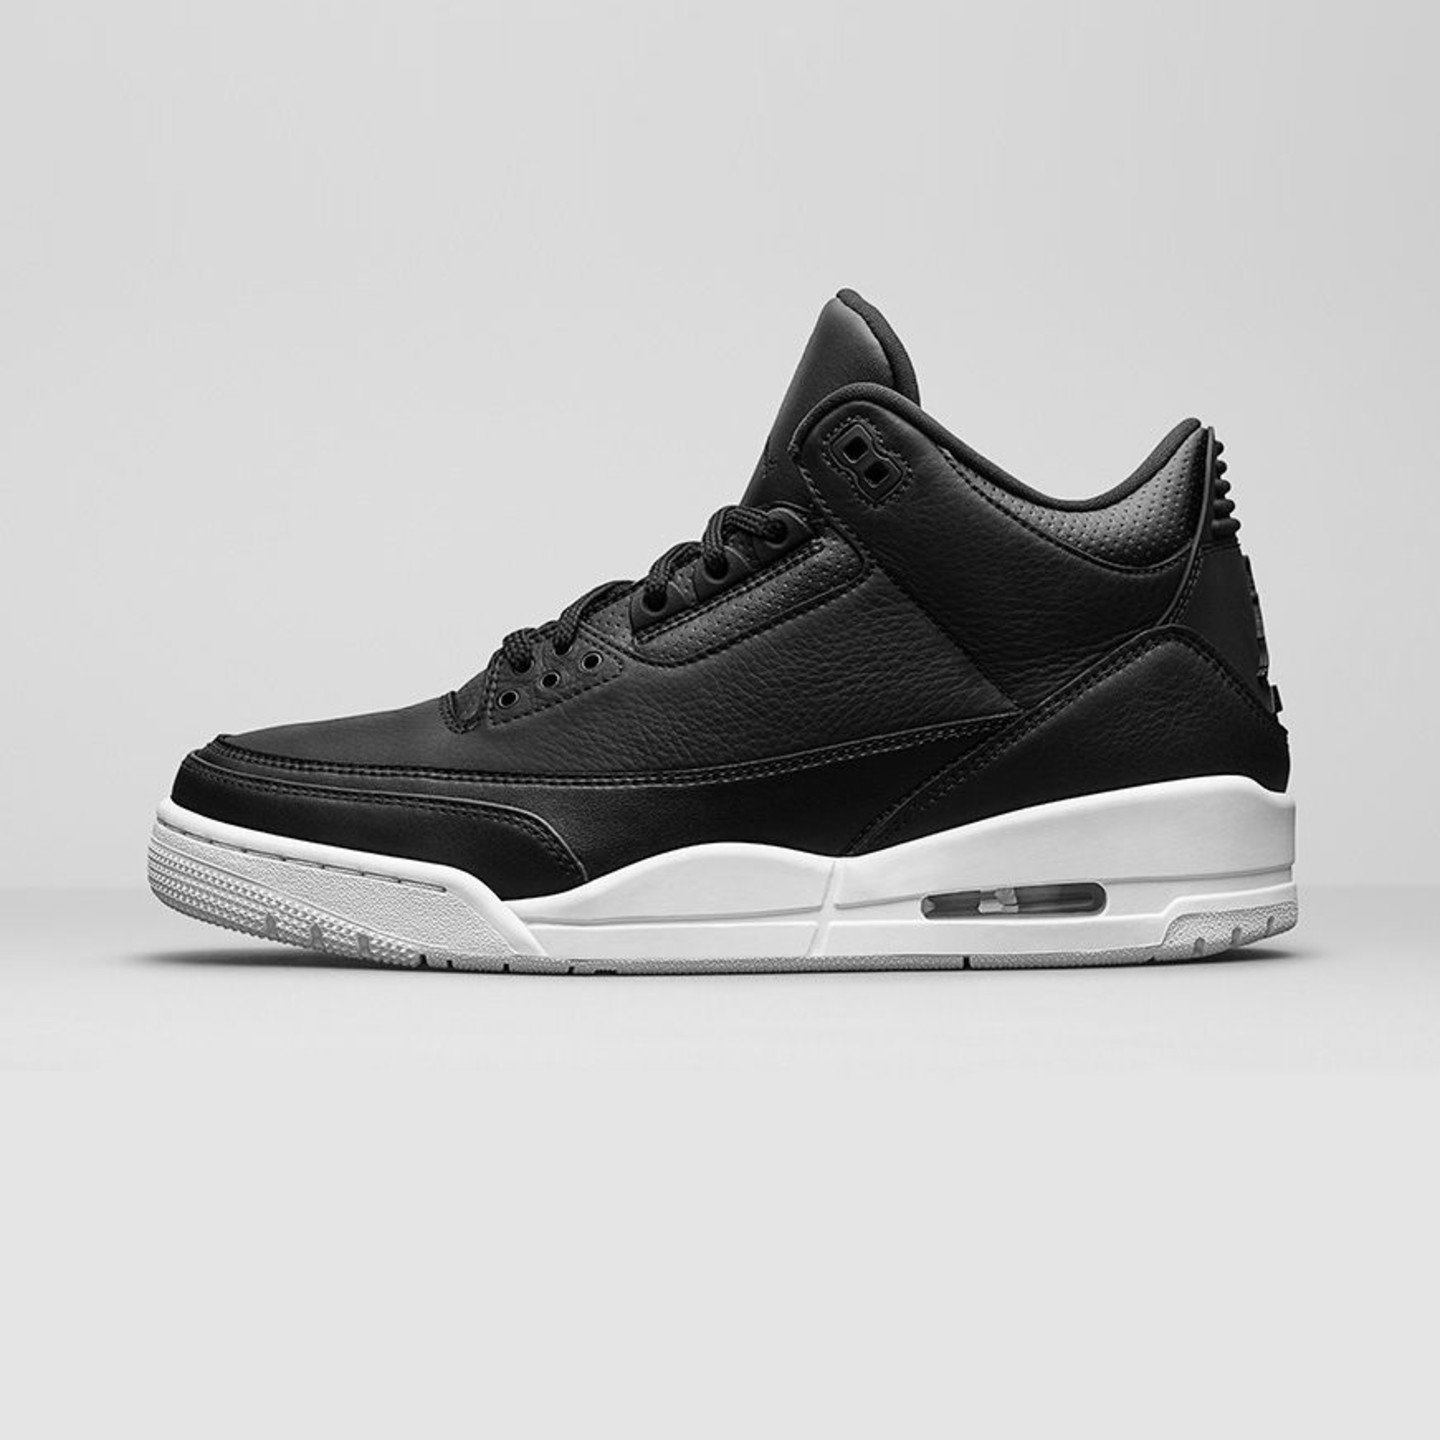 Jordan Air Jordan 3 Retro 'Cyber Monday' Black / White 136064-020-42